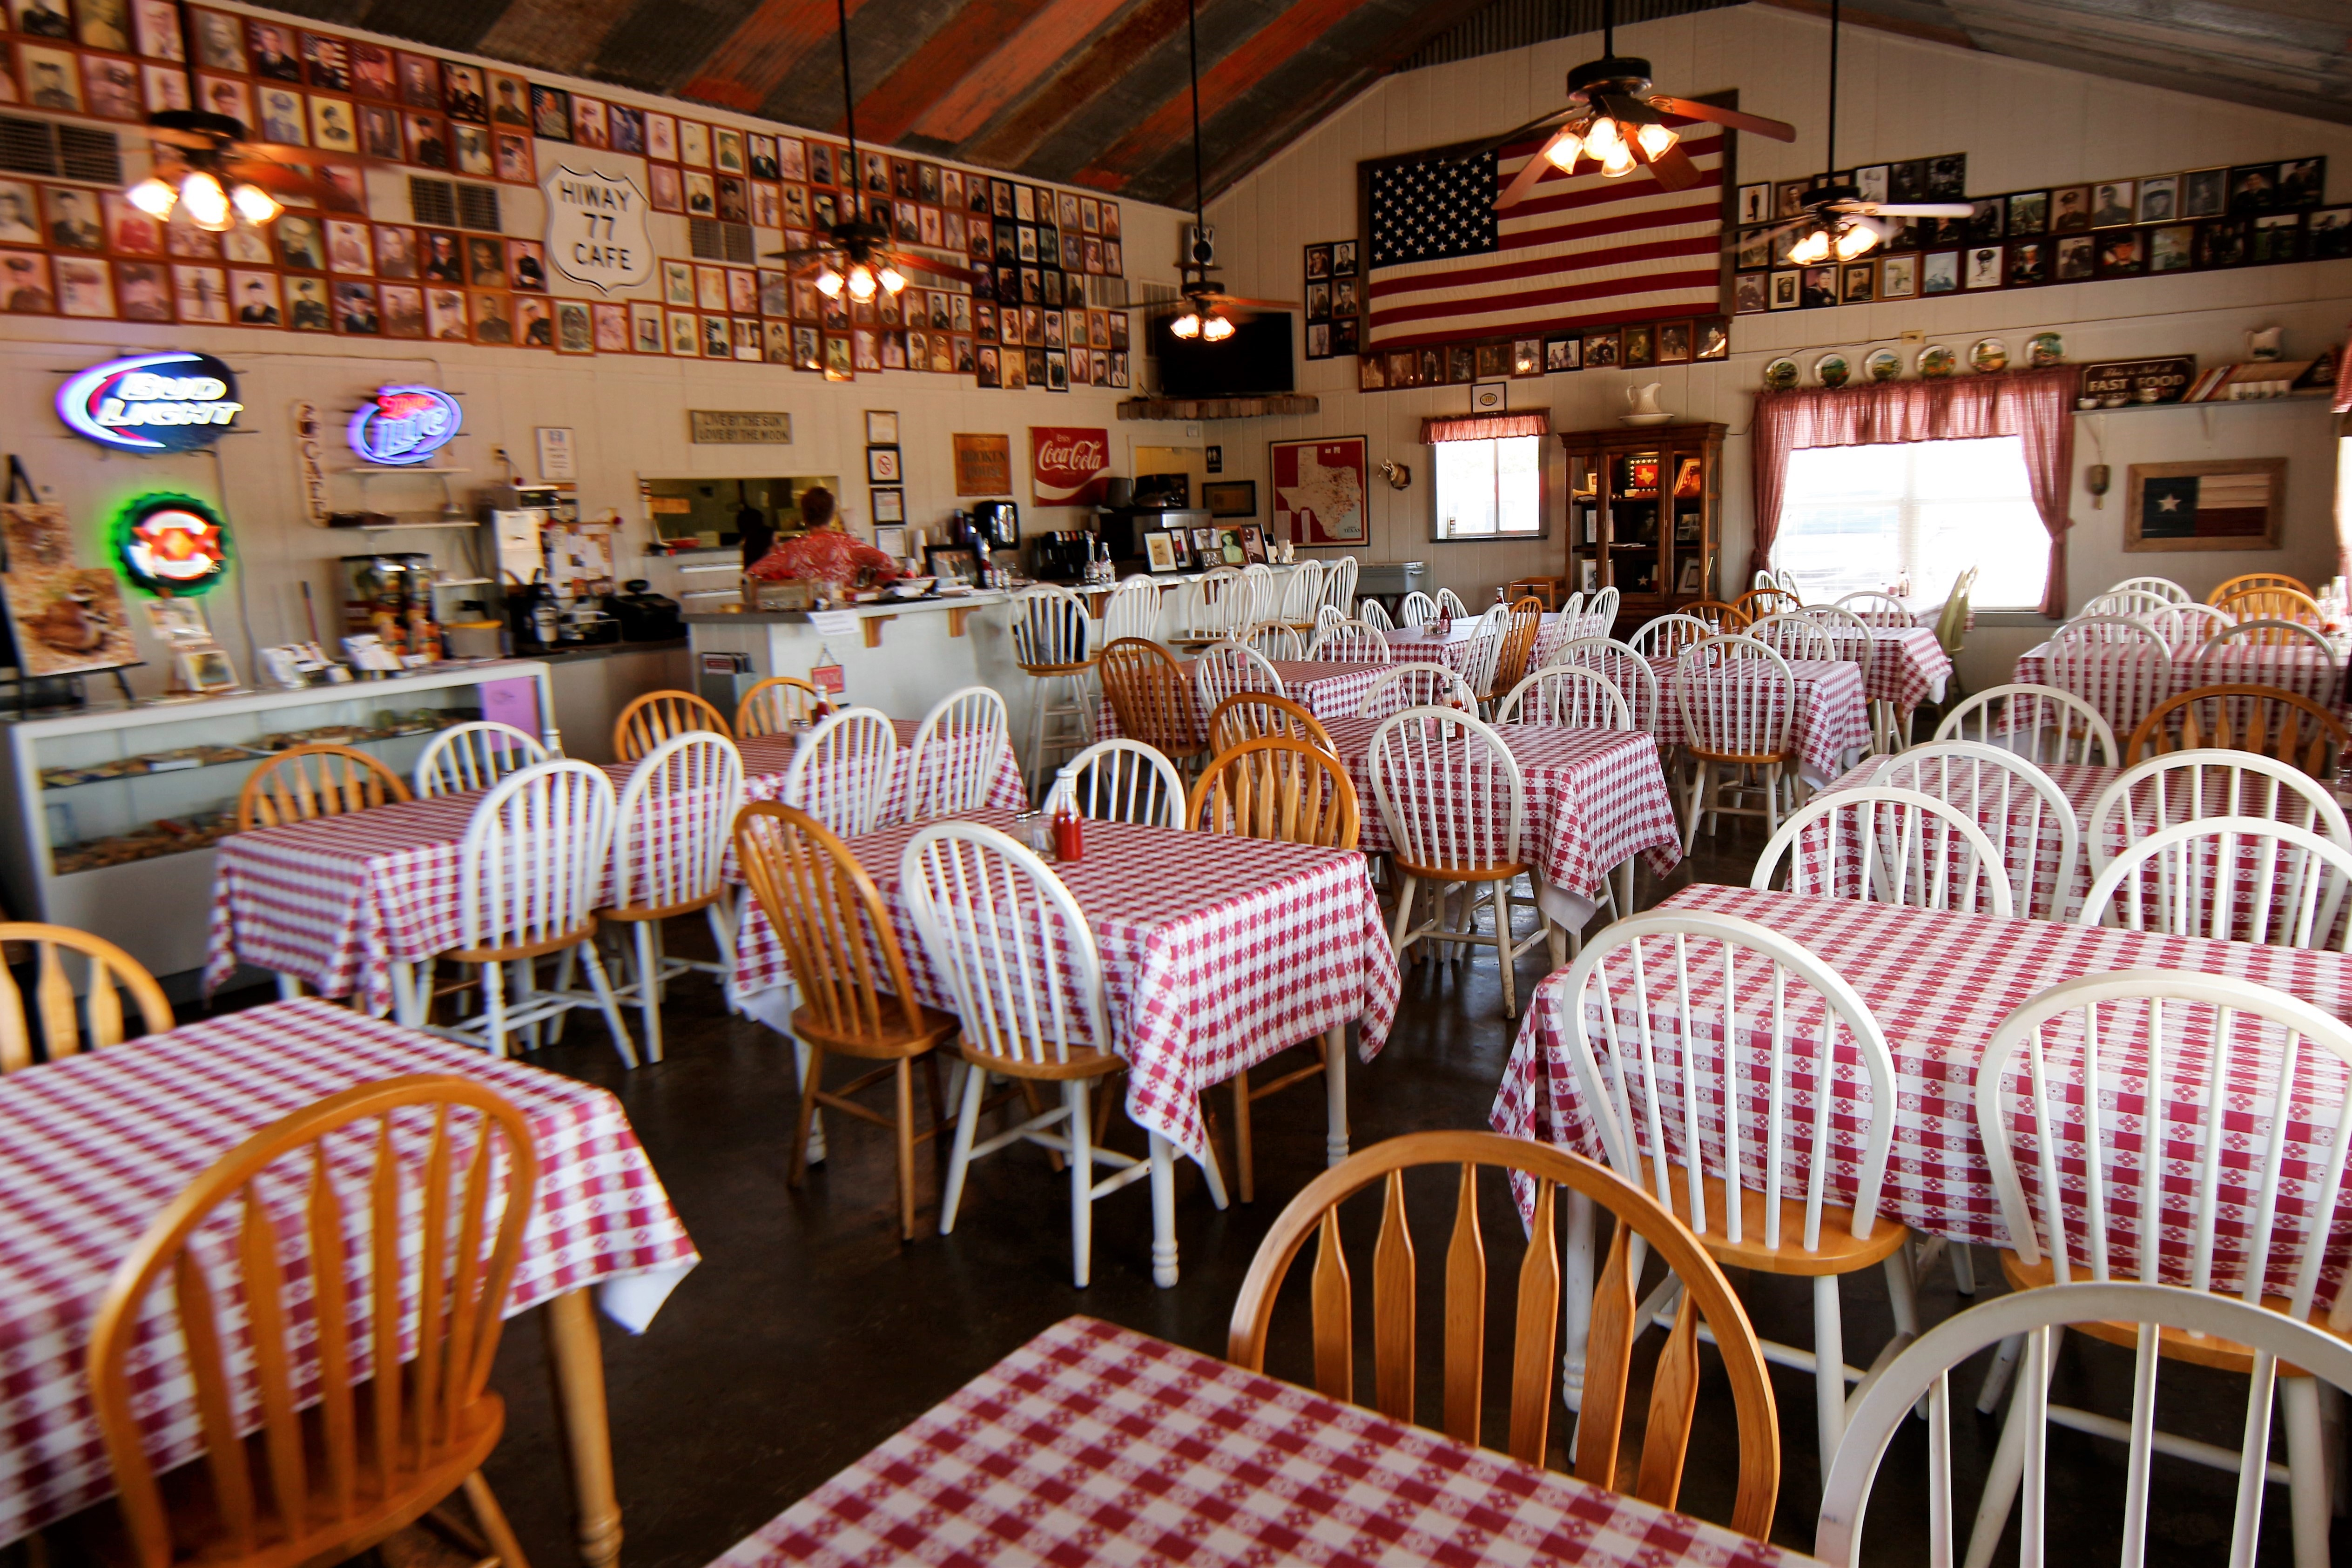 Interior of Cafe on Hwy 77 in Texas